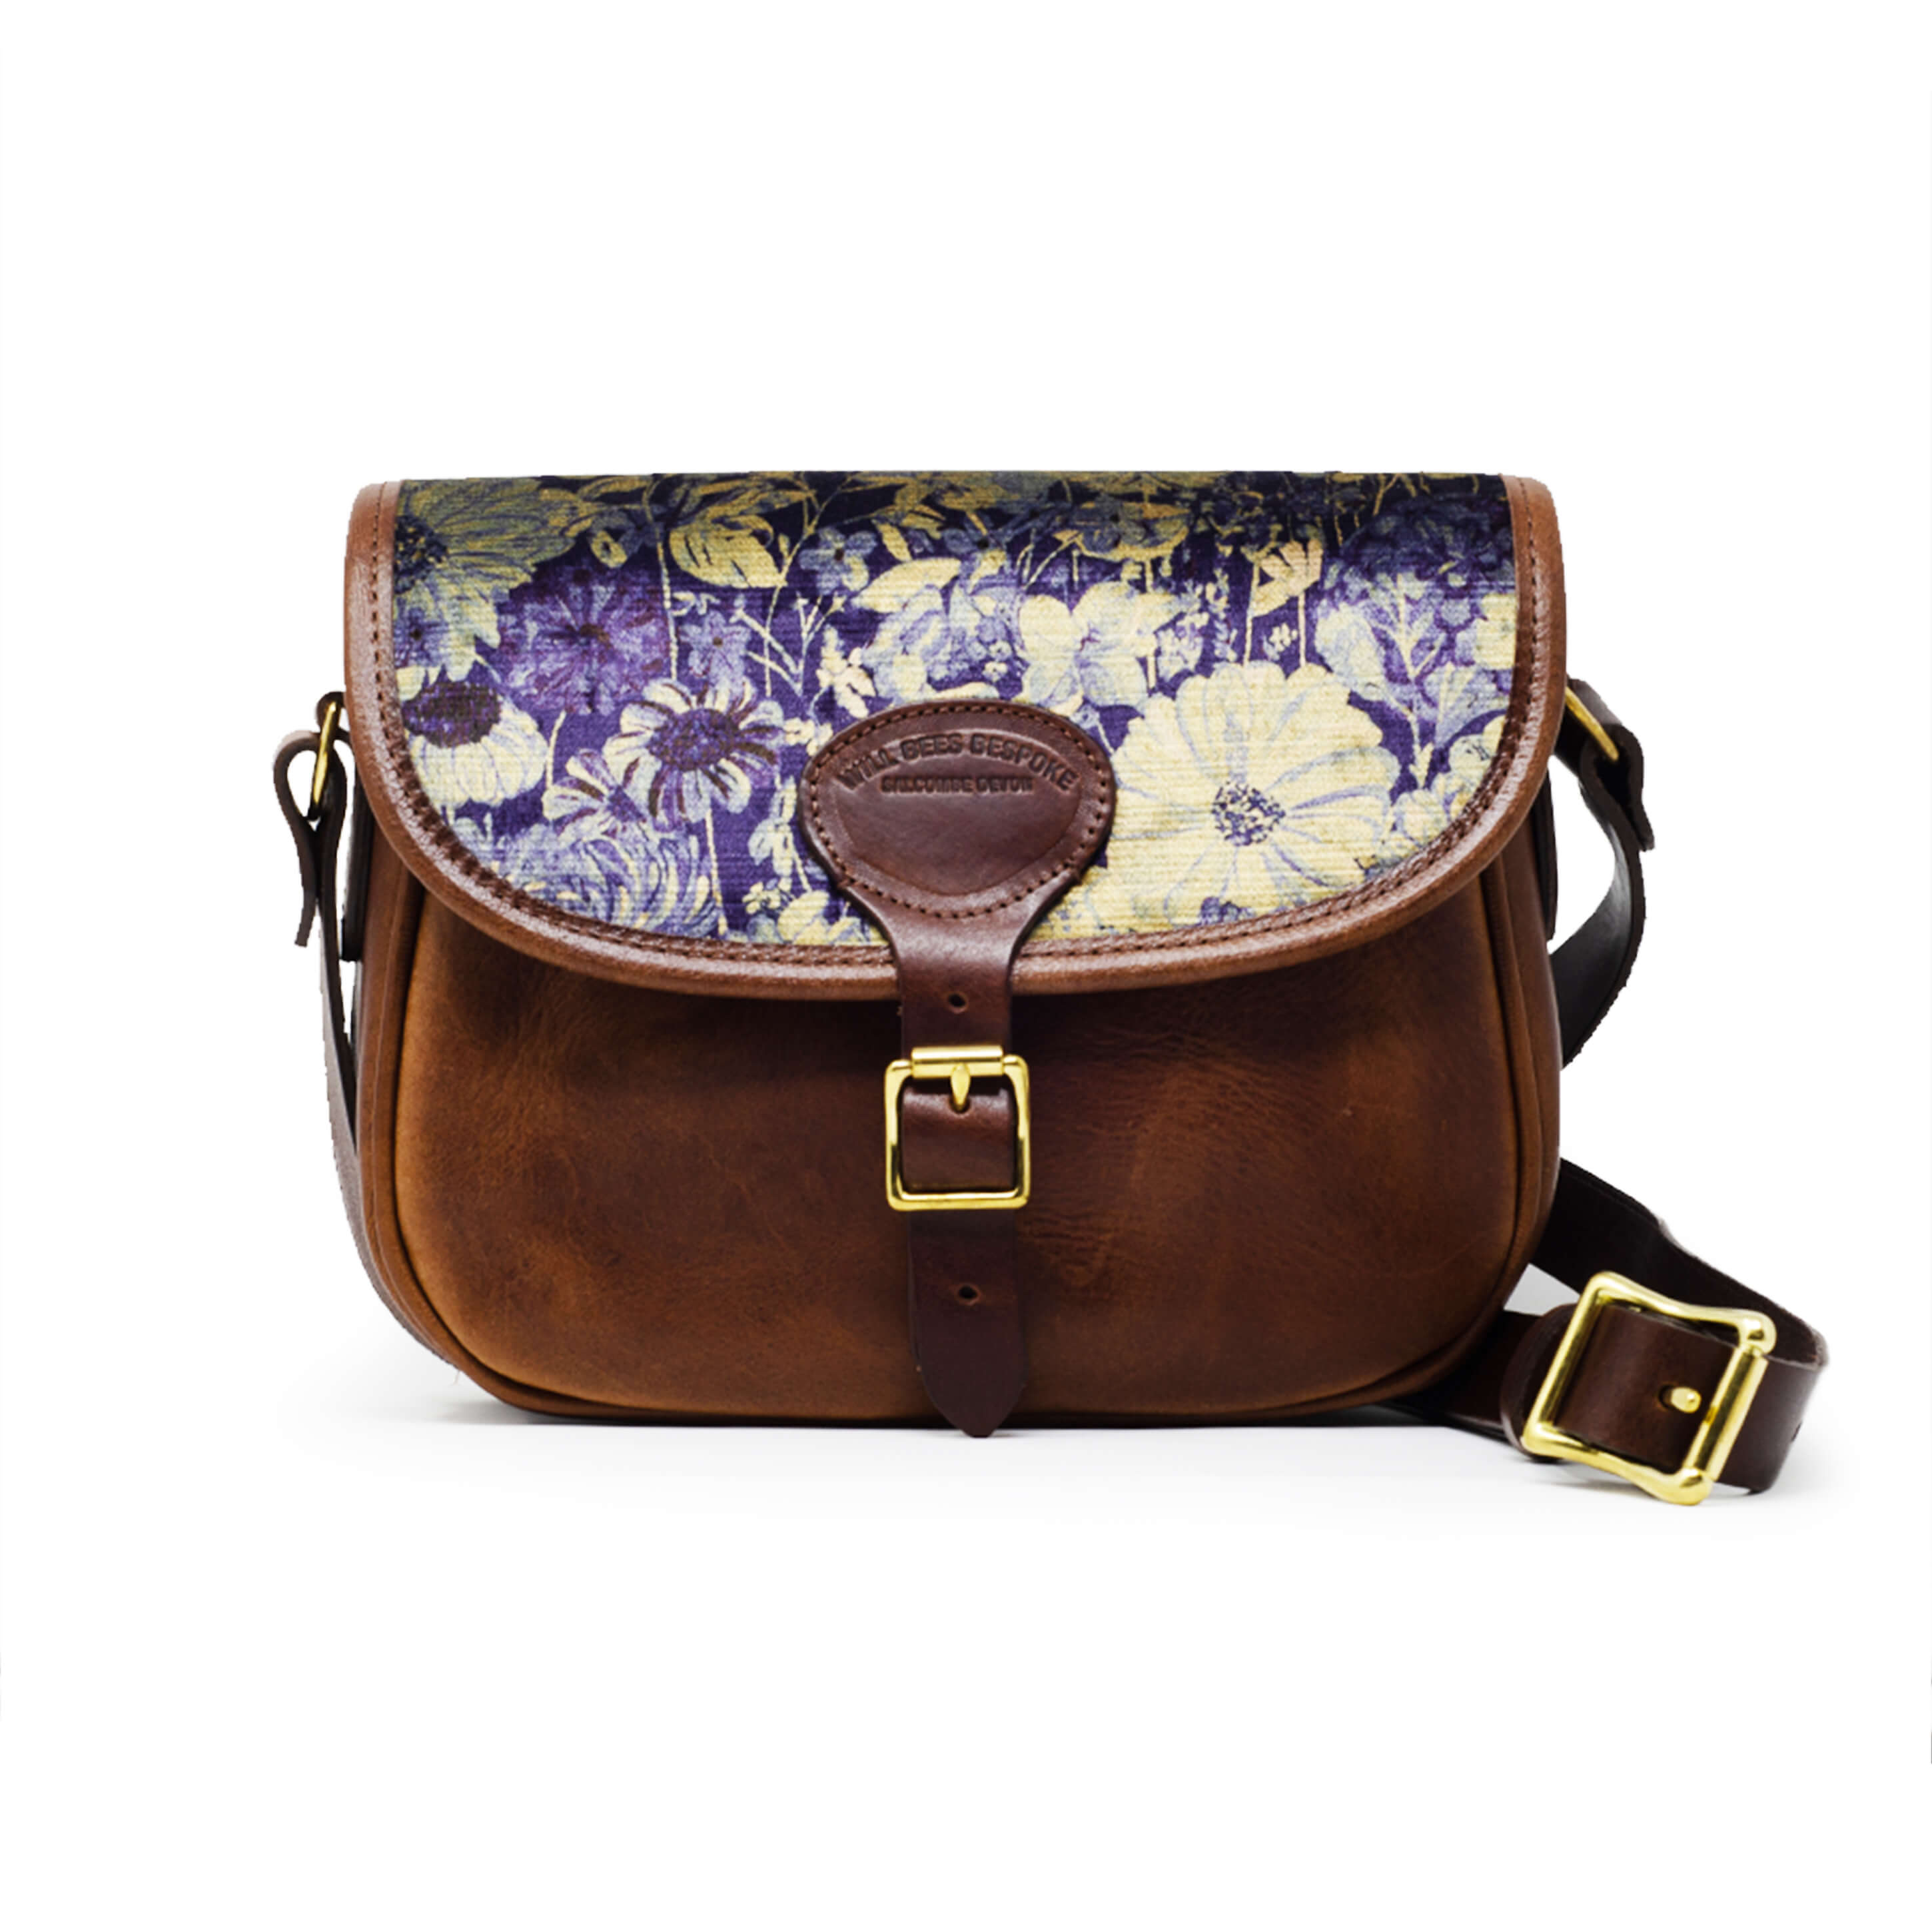 Additional Saddle Bag Panel - Botanical Garden in Blue Sky - Will Bees Bespoke